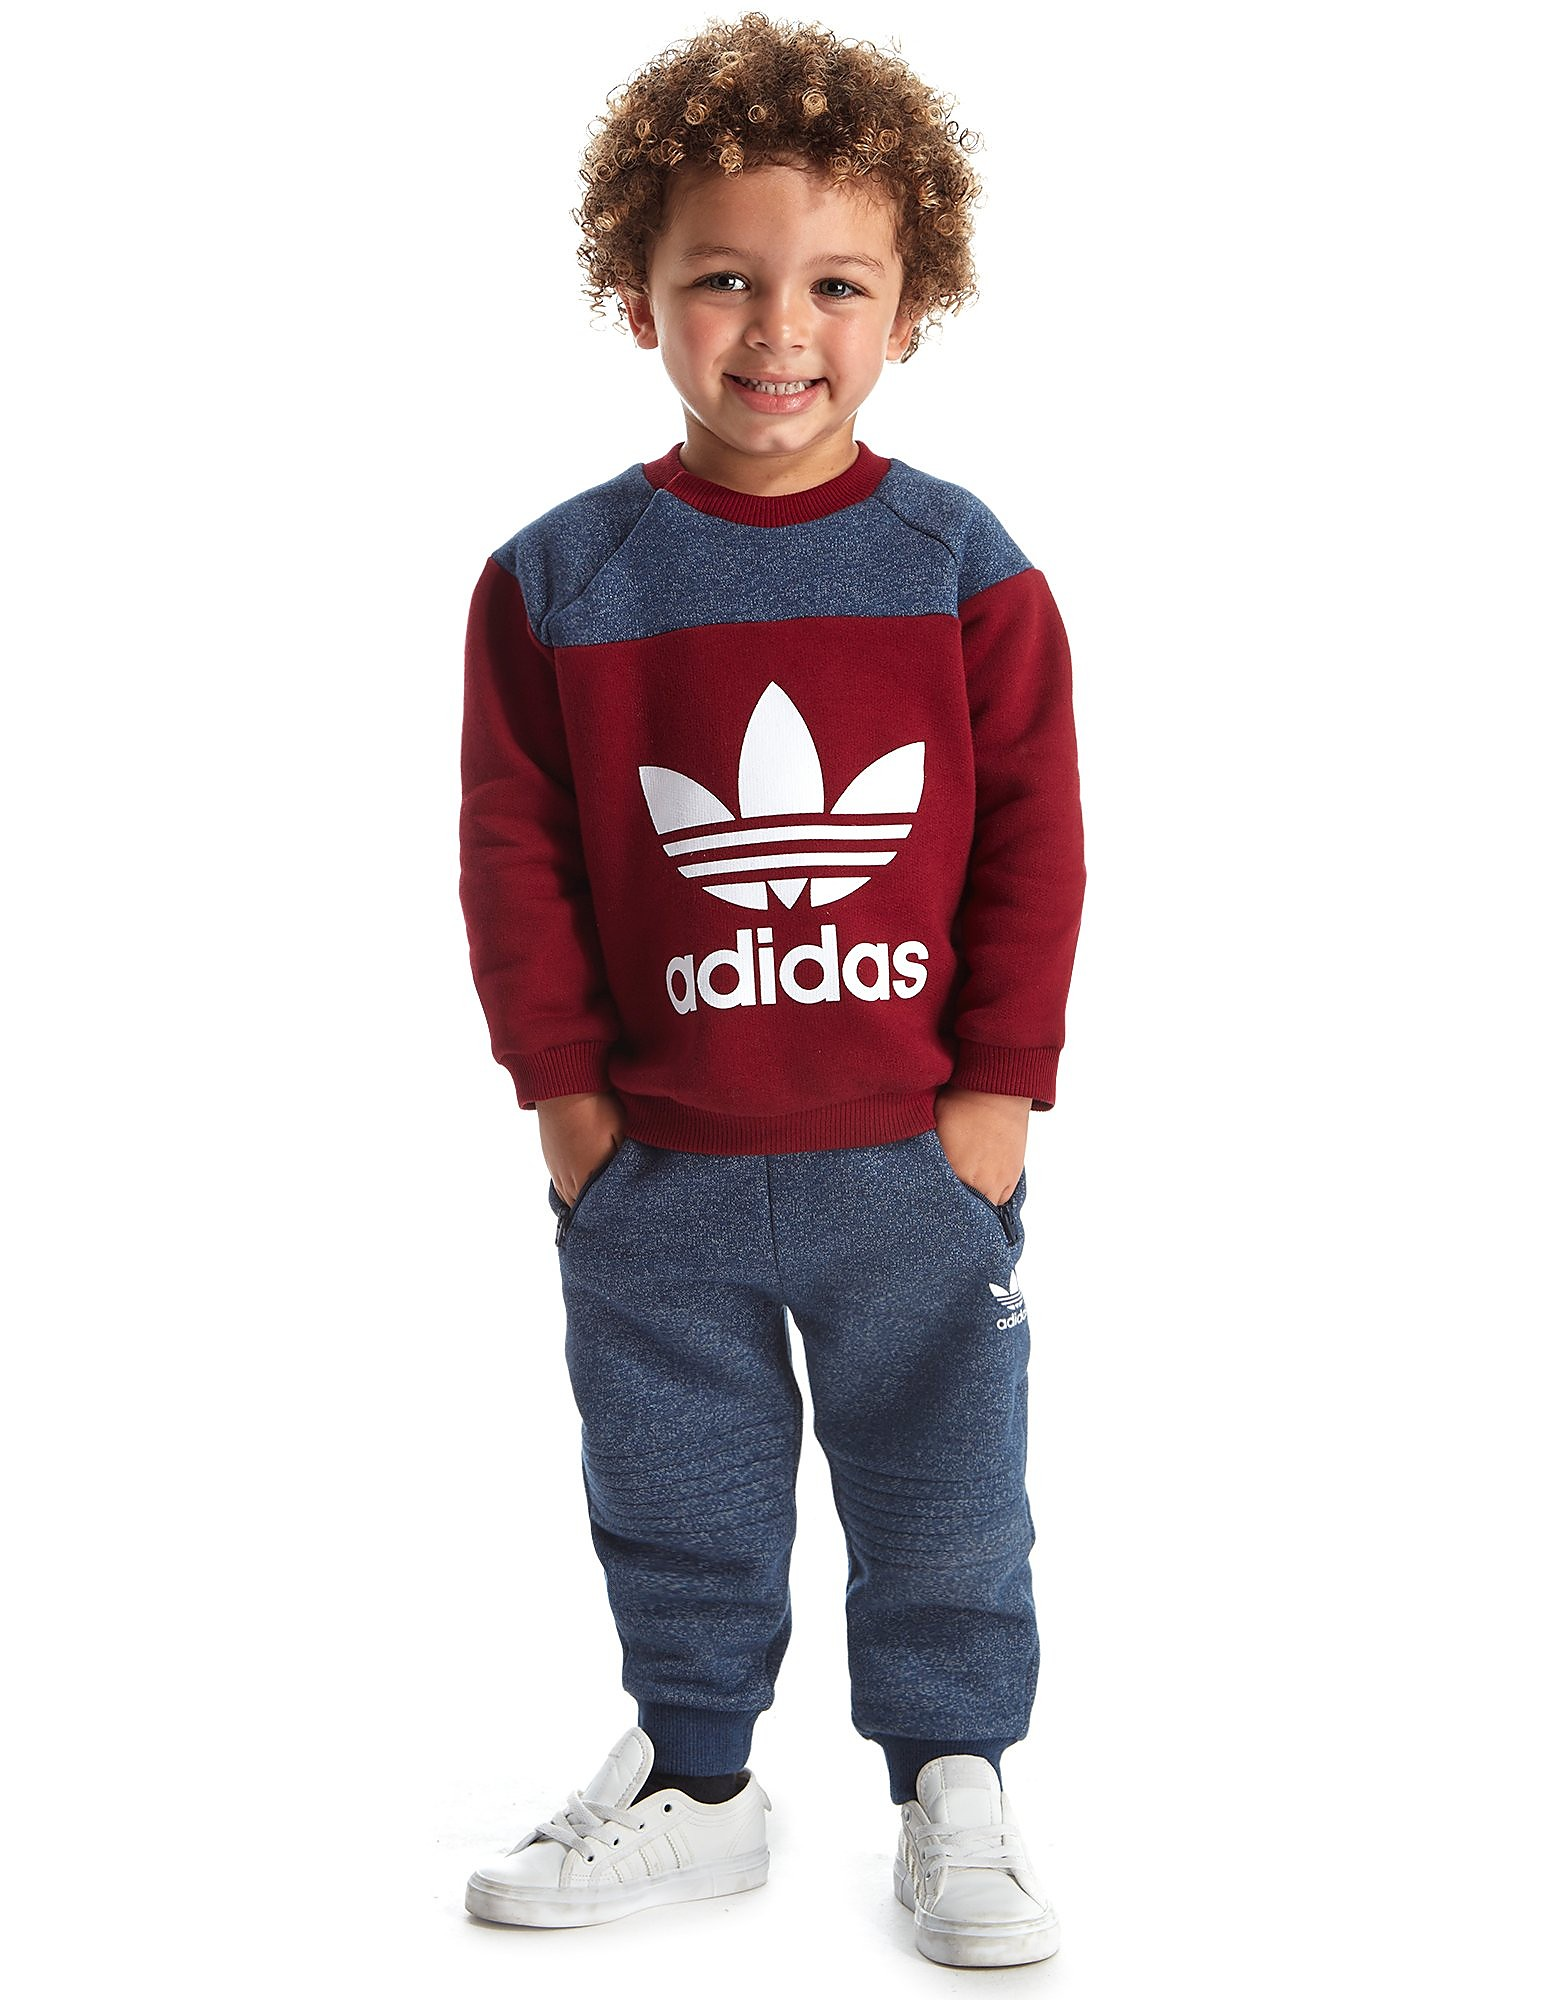 adidas Originals Crew Suit Infant